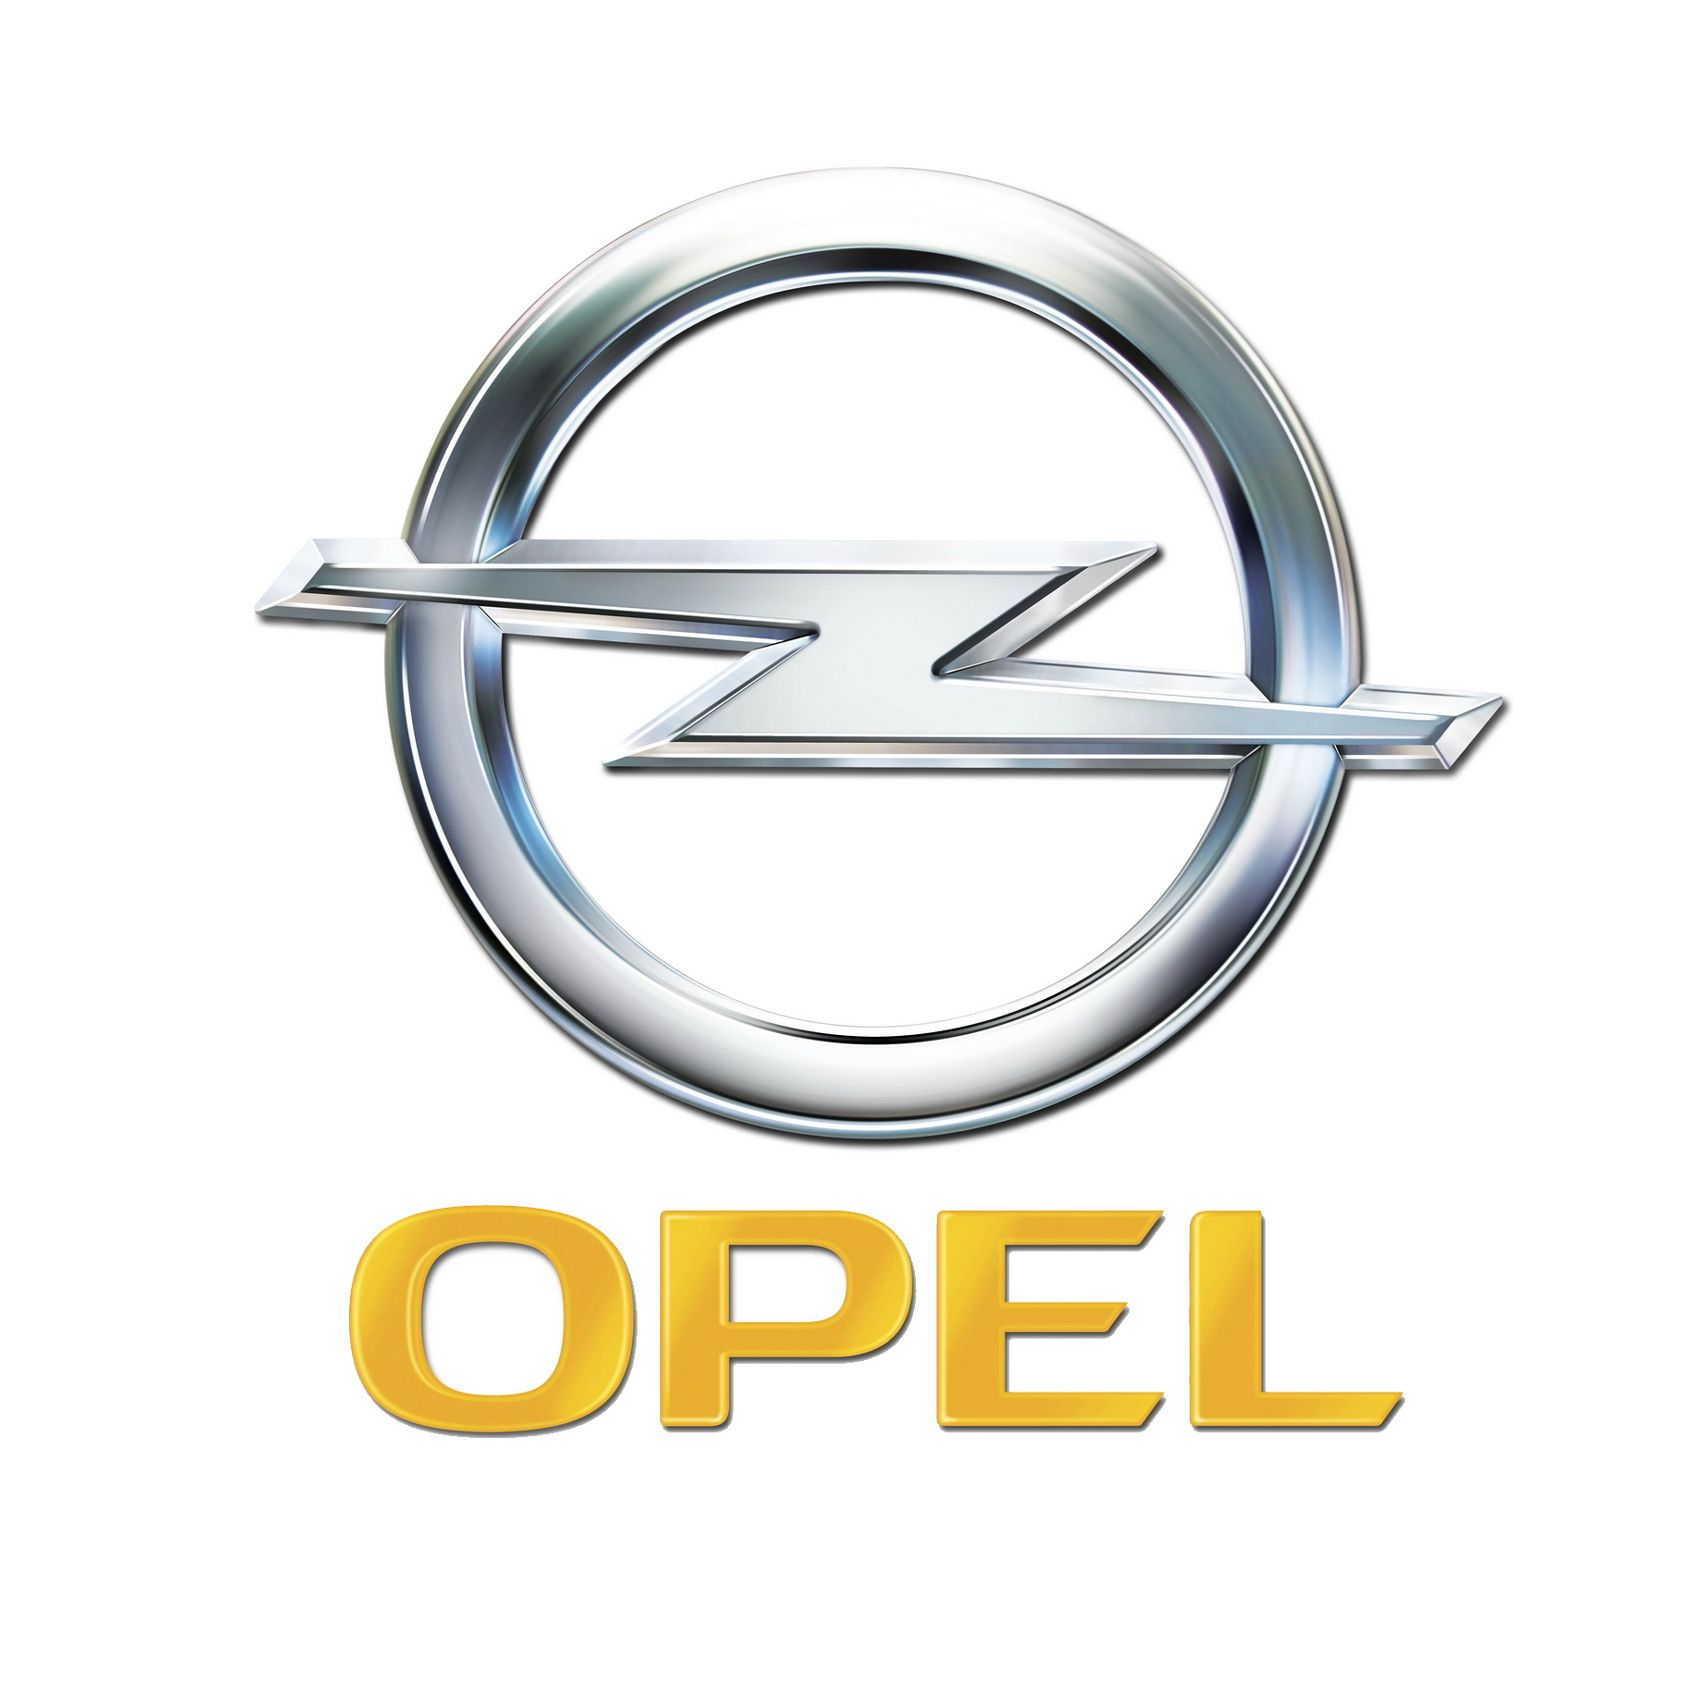 Pin By Adel Nabil On Opel Pinterest Car Logos And Cars